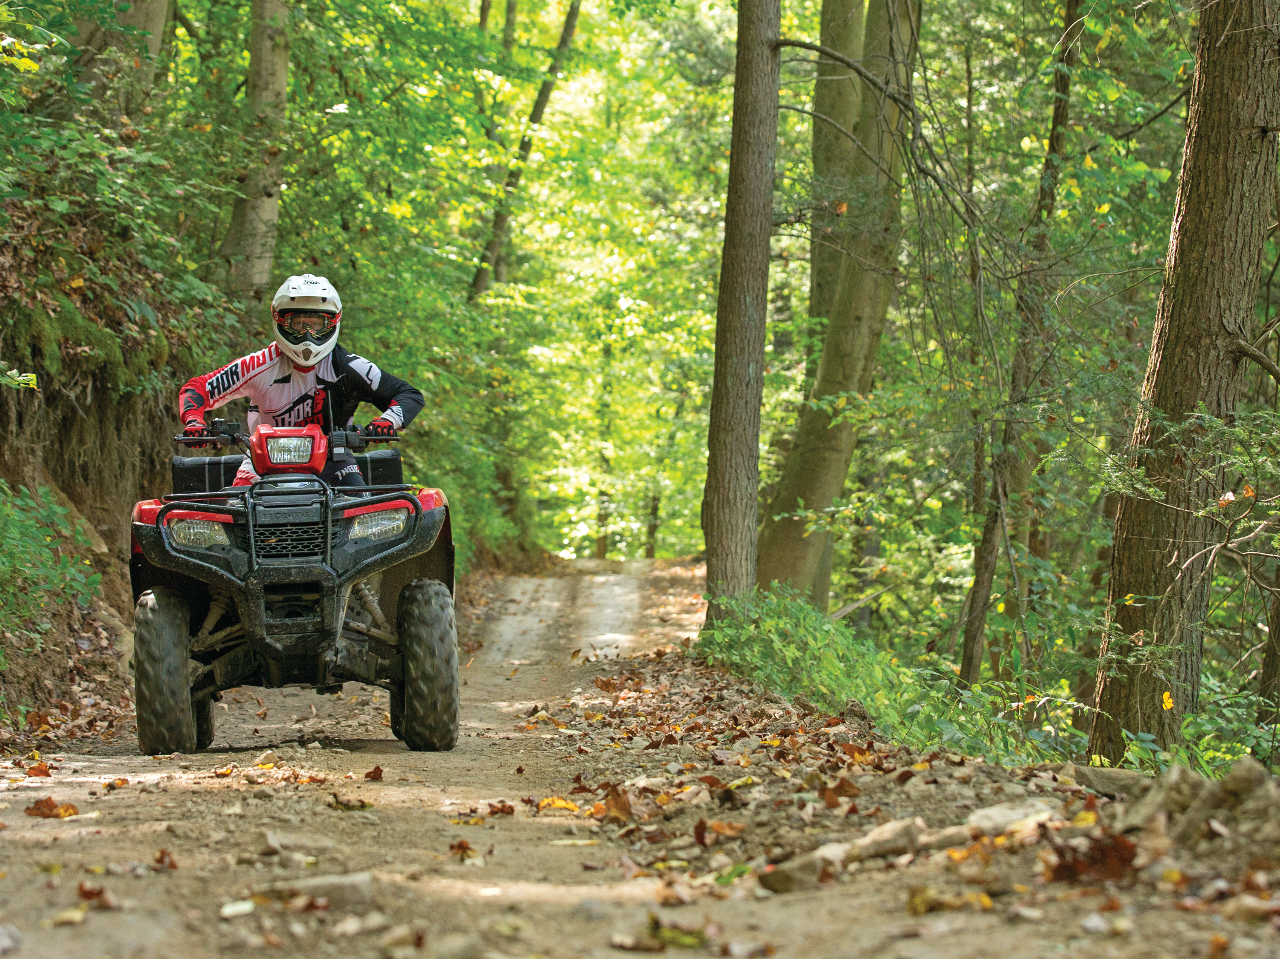 Maryland Trails Off Road Parks Trails ATV Trails